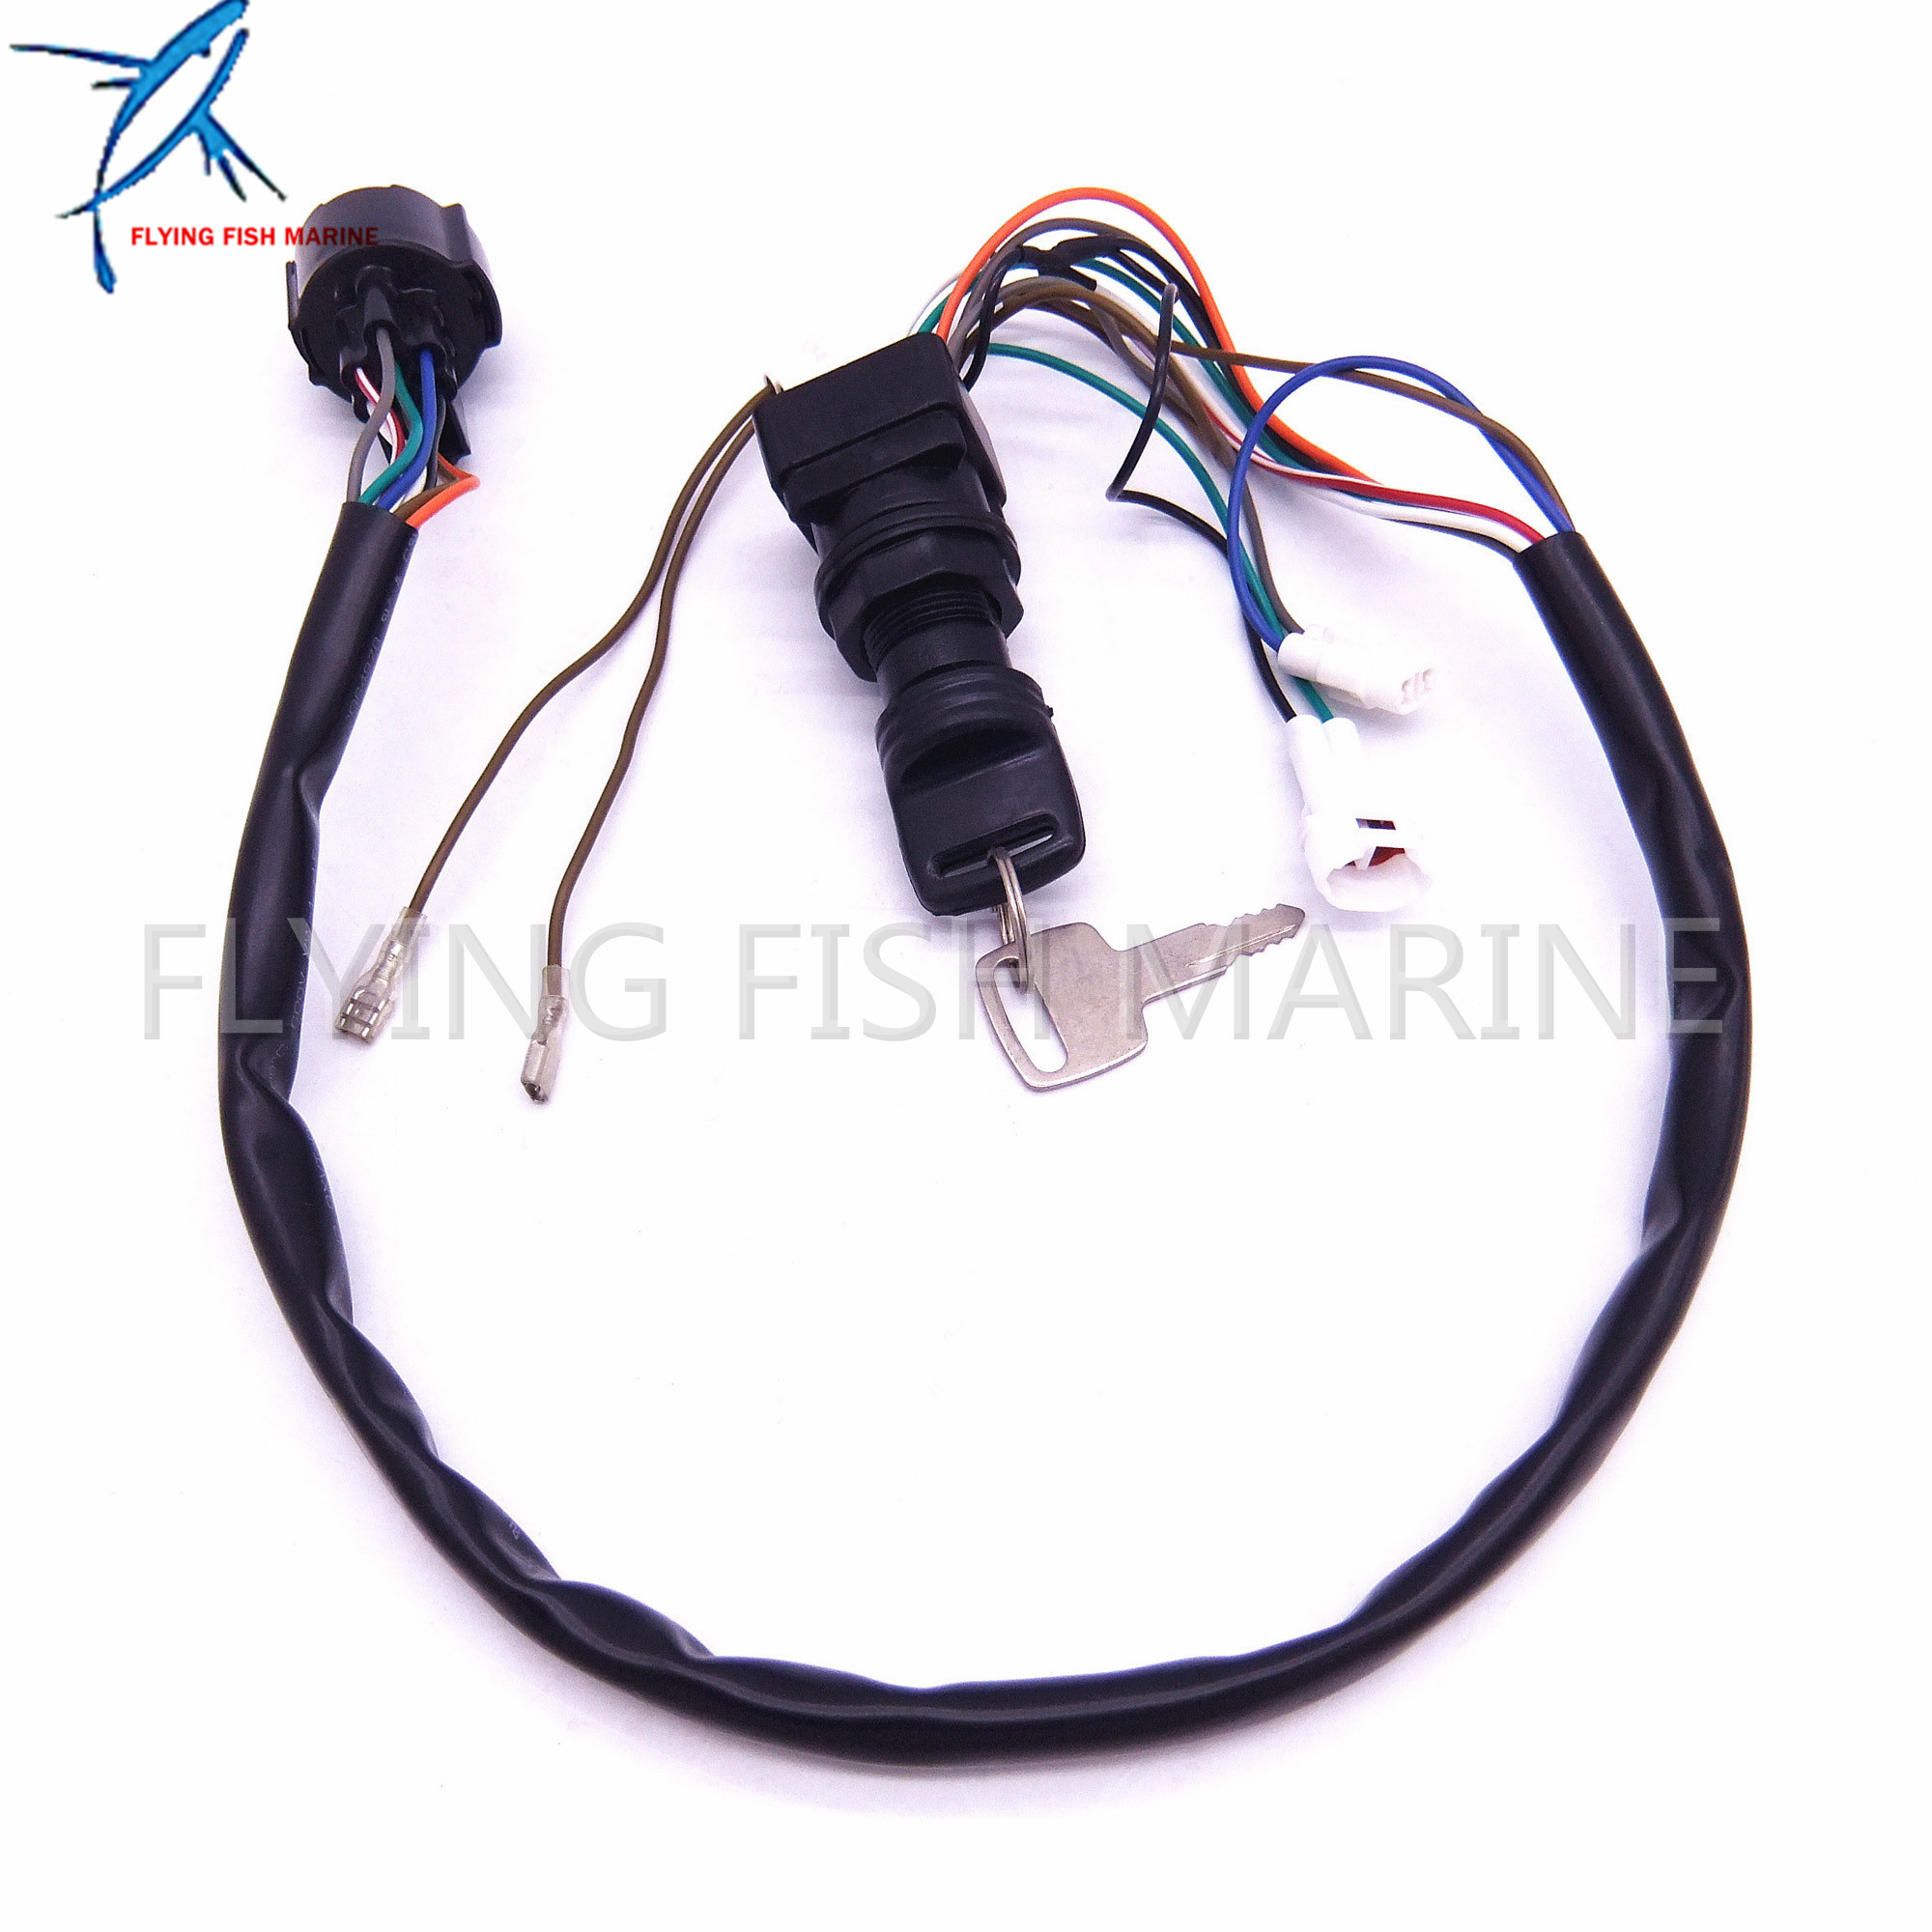 37110-93J00 37110-93J01 Boat Motor Ignition switch assembly For Suzuki Outboard Motor ,Free Shipping